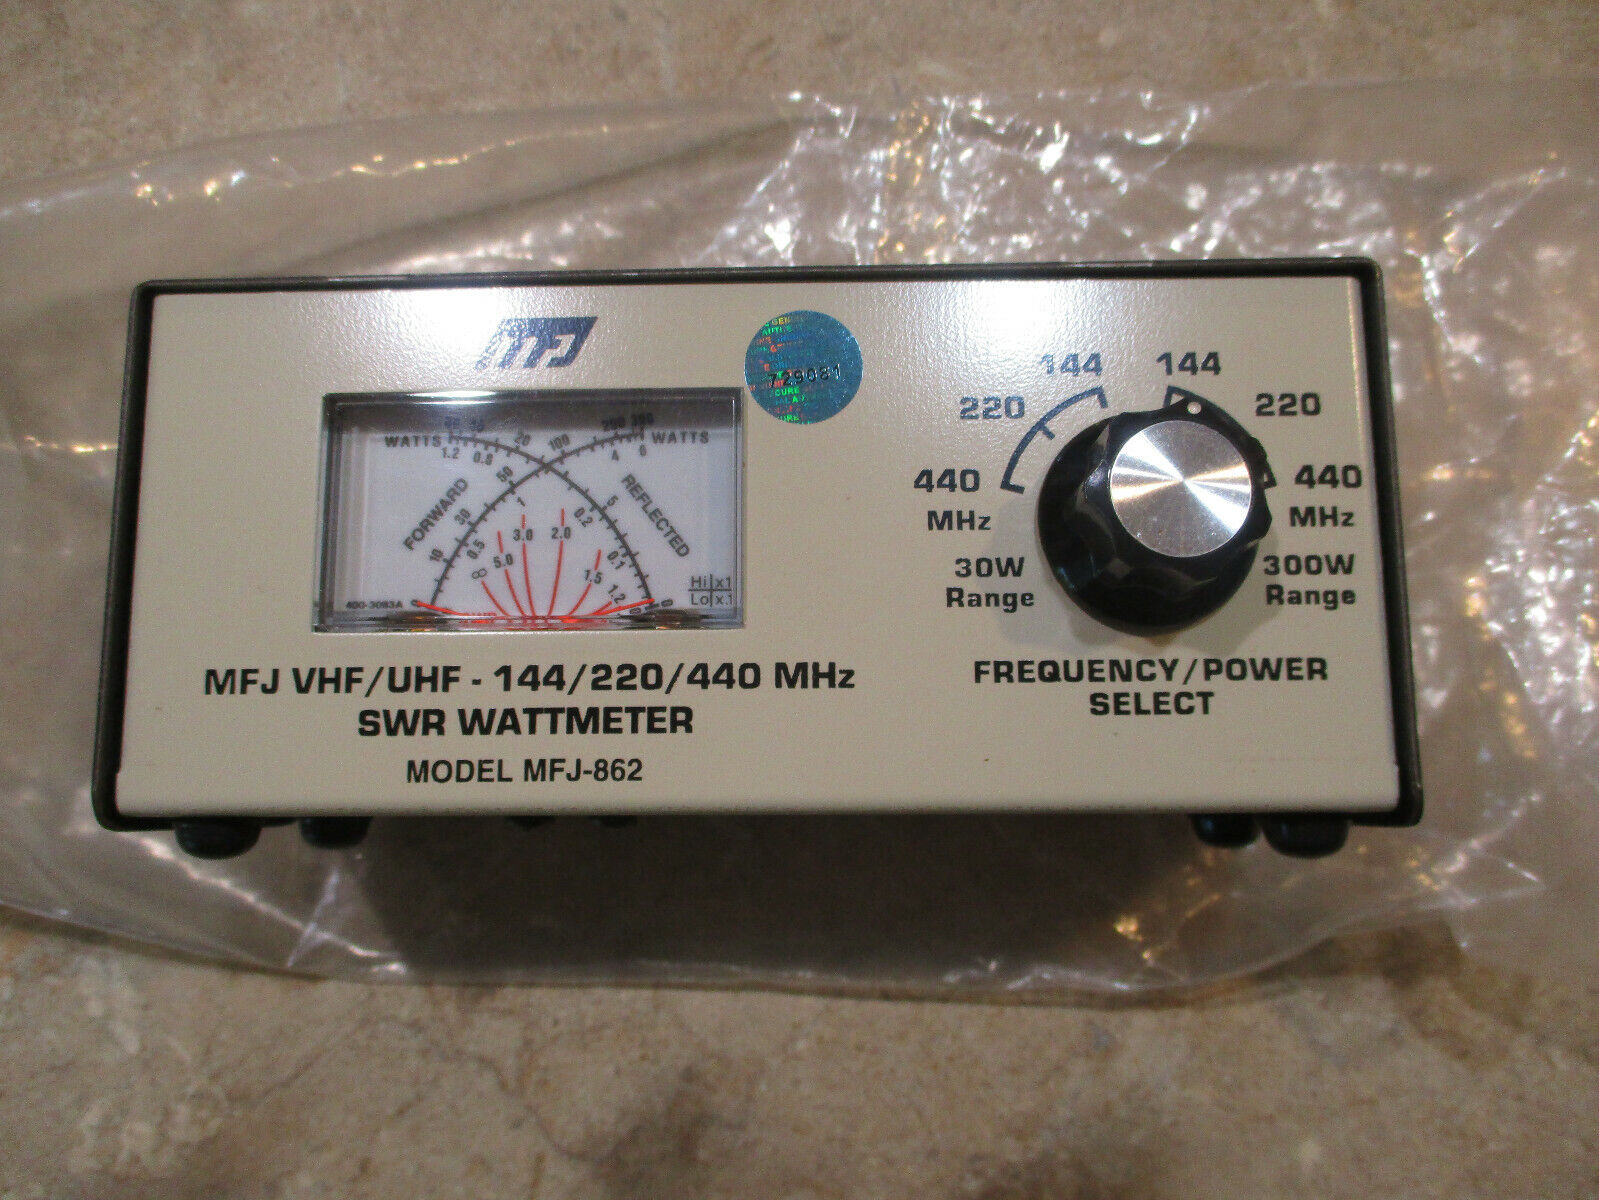 MFJ-862 VHF/UHF 144/220/440 MHz SWR Wattmeter . Available Now for 99.95